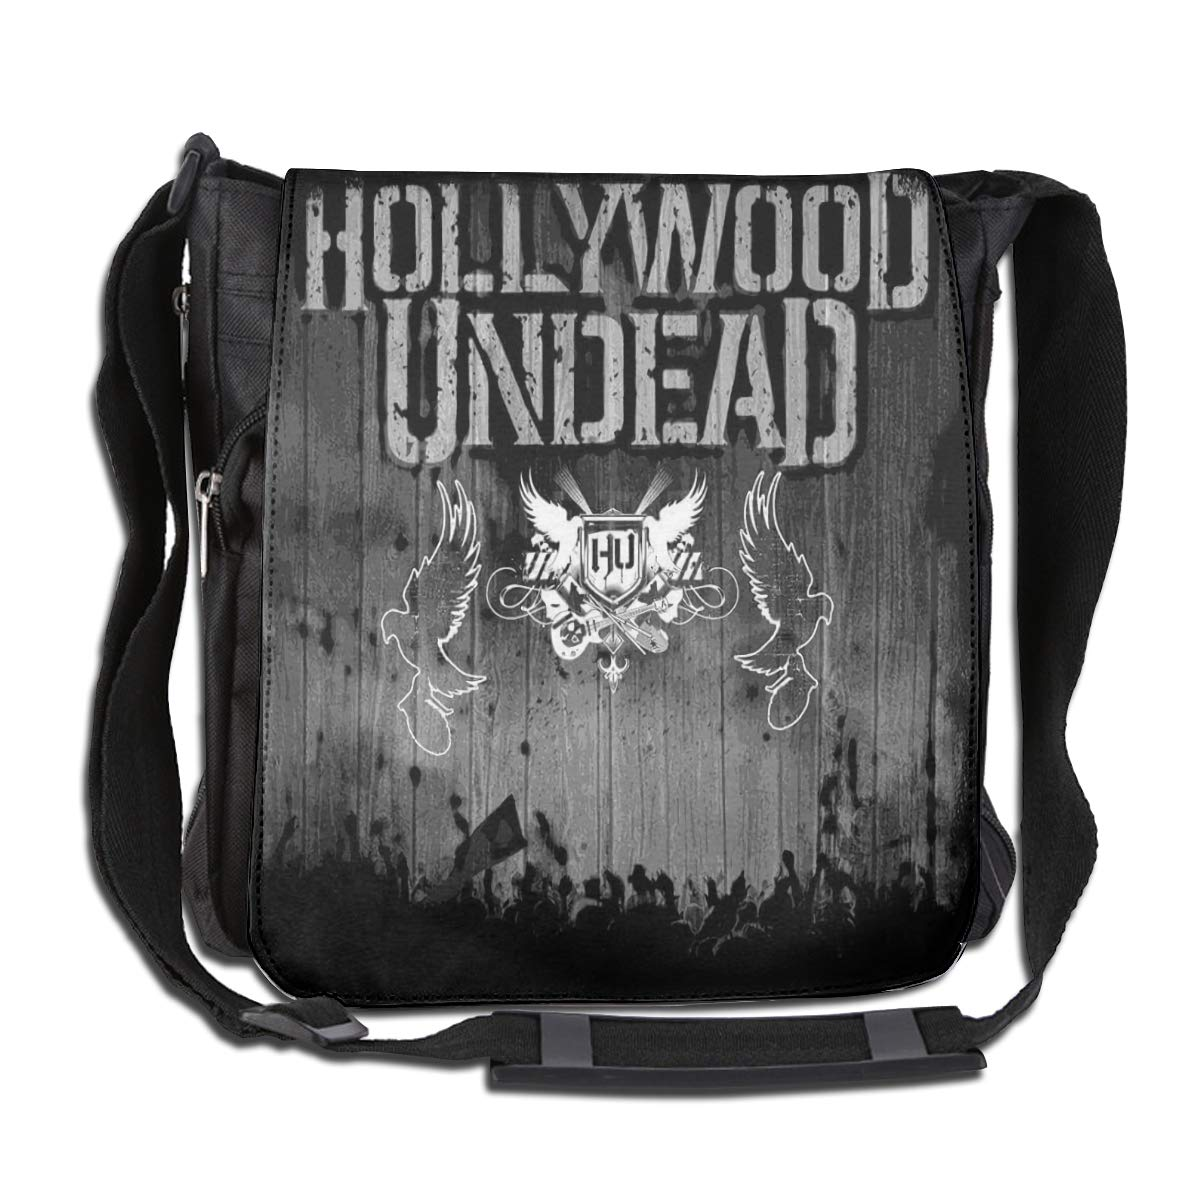 Hollywood Undead Classic Retro Messenger Bag Large Capacity Backpack Multifunction